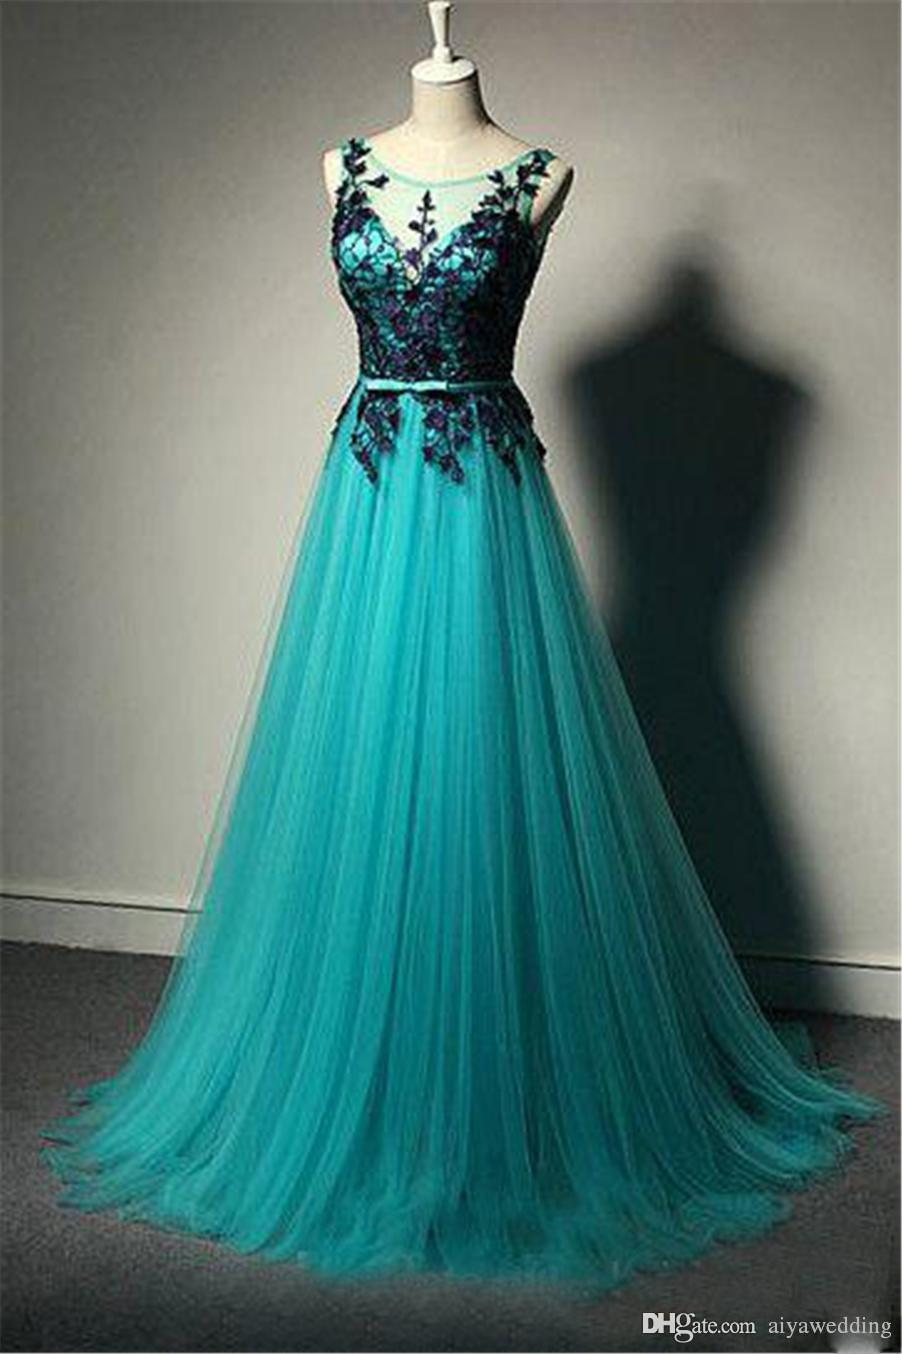 Turquoise Sheer Neck Lace V Back Plus Size Pregnant Dress for Women Middle East Prom Gowns Reals Long Arabic Lace Evening Dresses